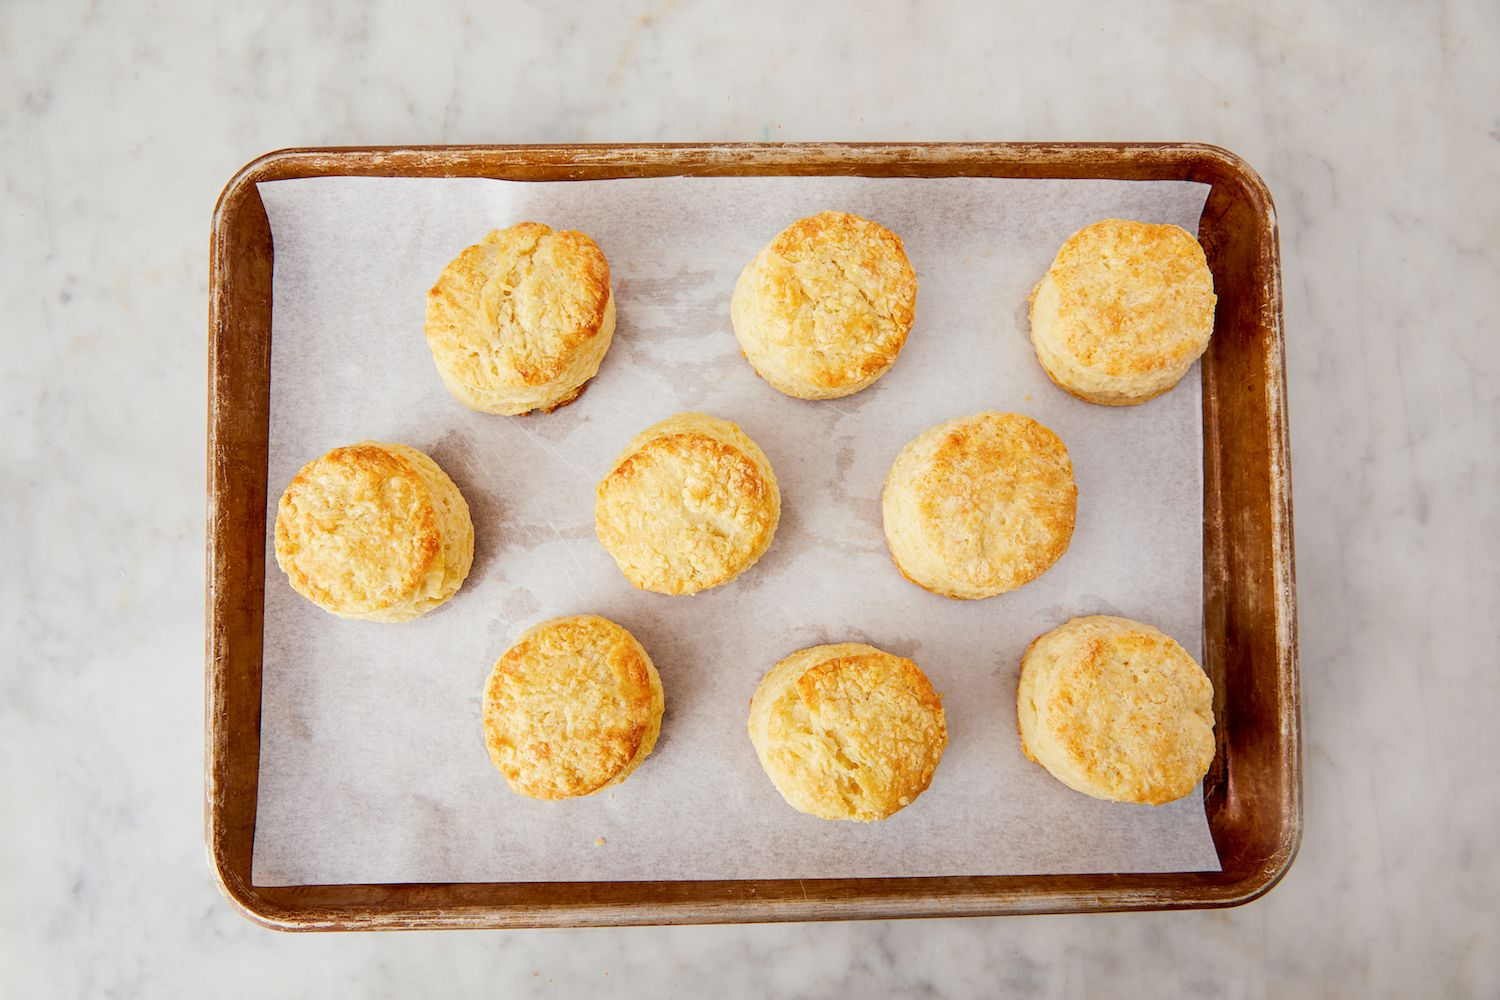 Best-Ever Homemade Biscuits